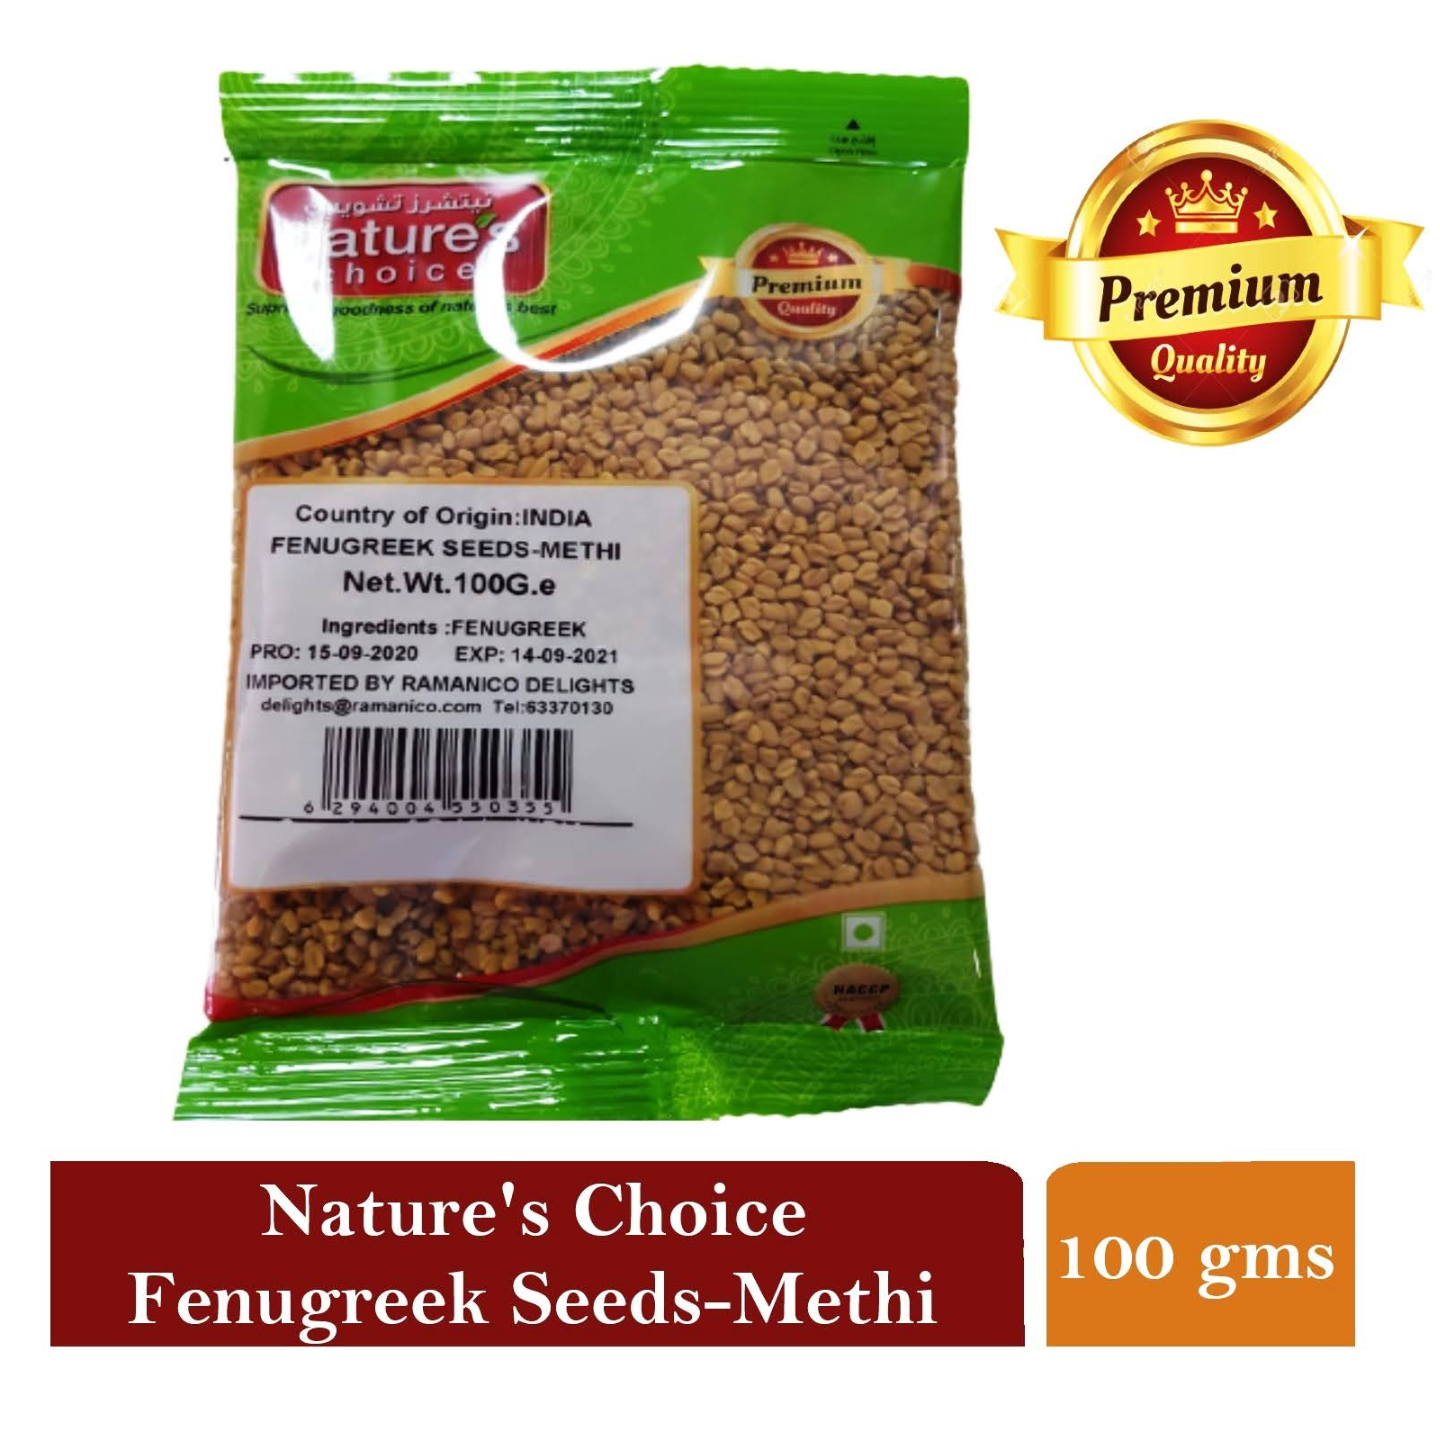 NATURES CHOICE PREMIUM QUALITY FENUGREEK SEEDS METHI 100G